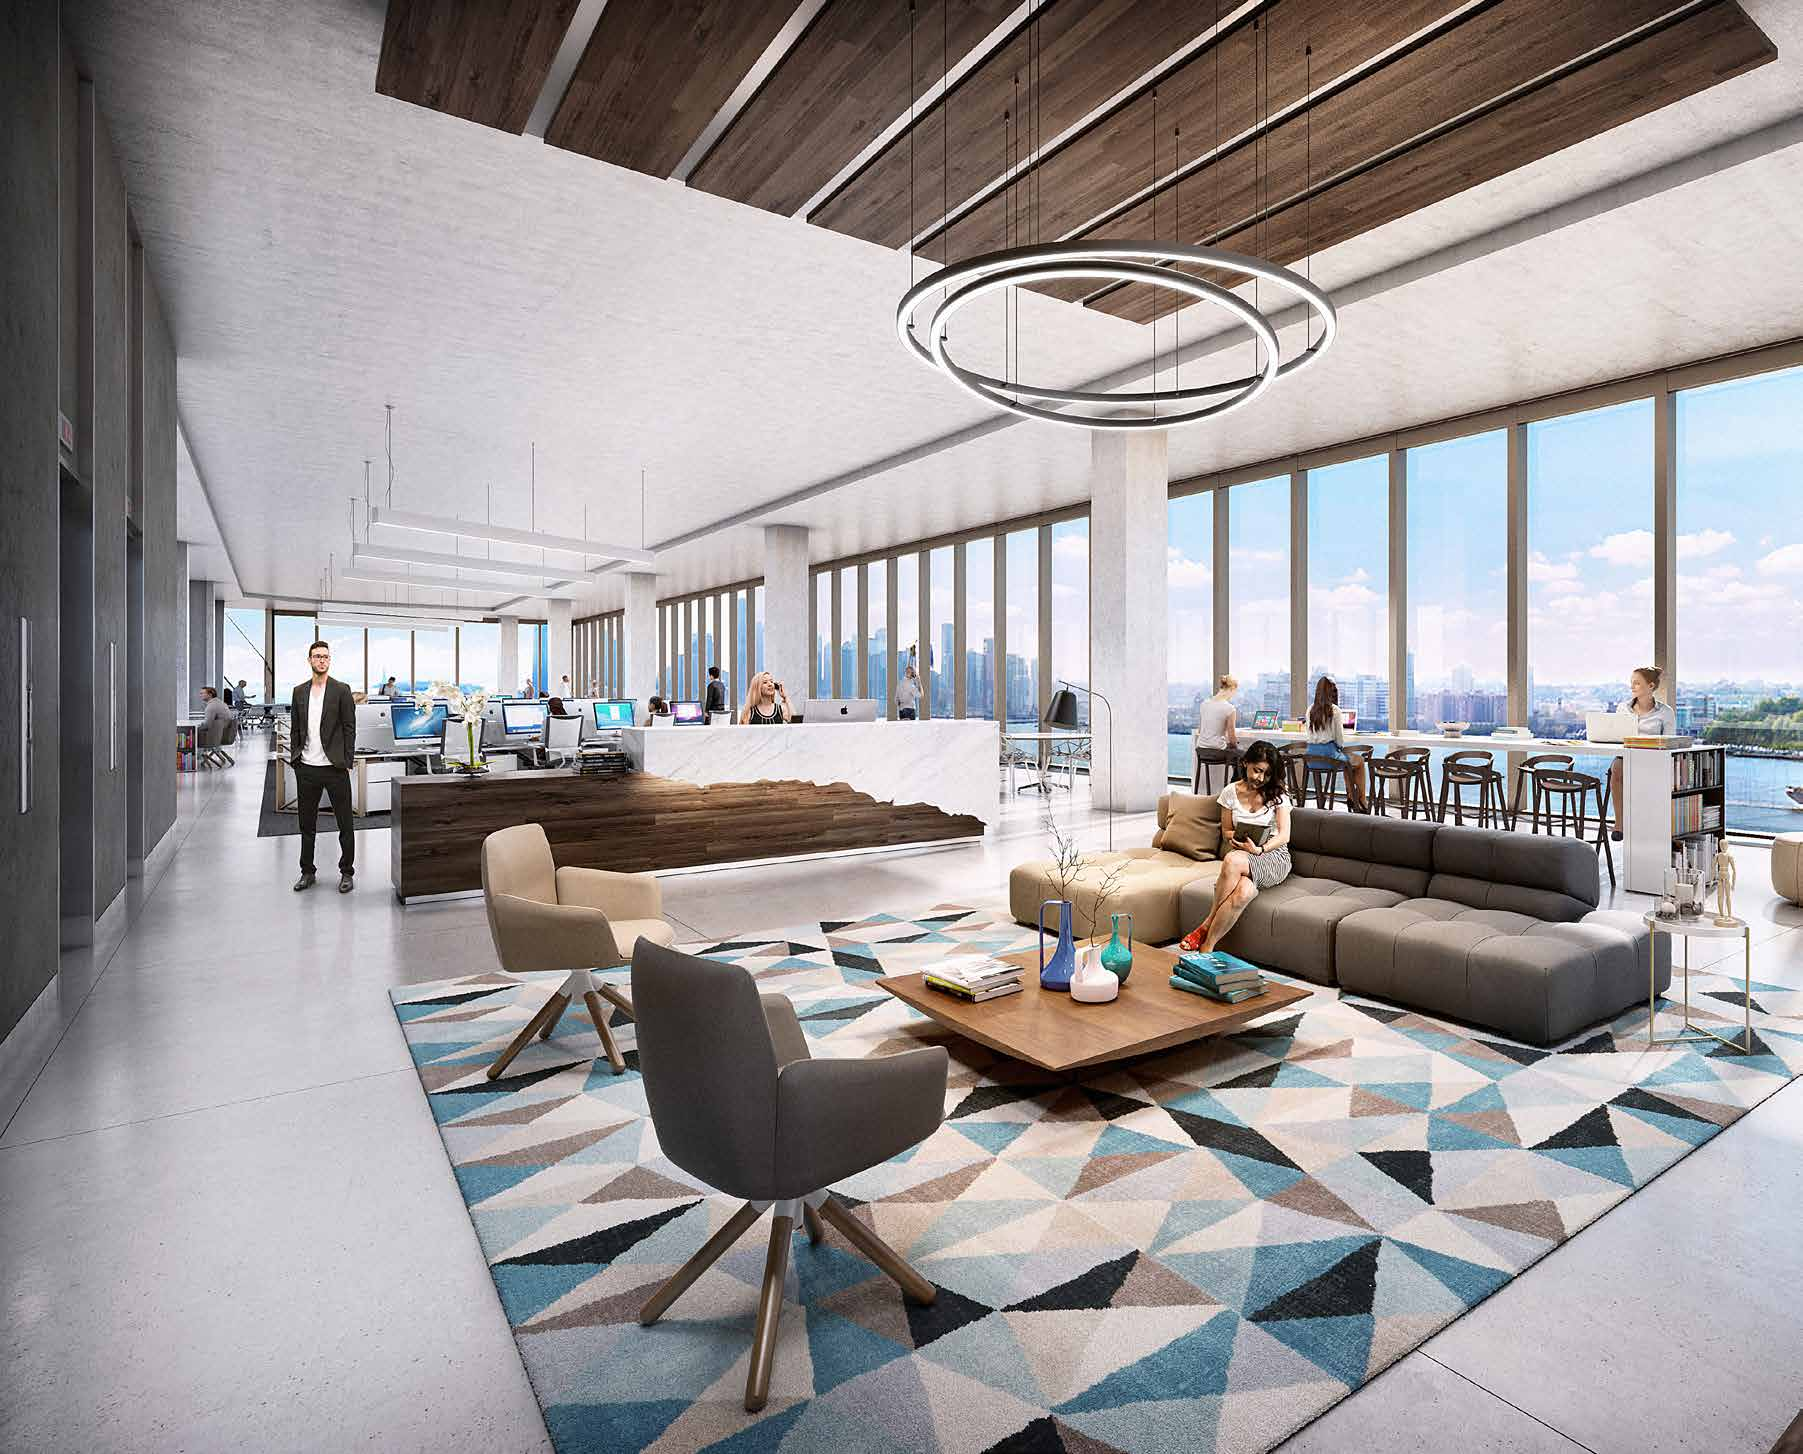 Studio gang s high line office building gets new for Interior design studio nyc